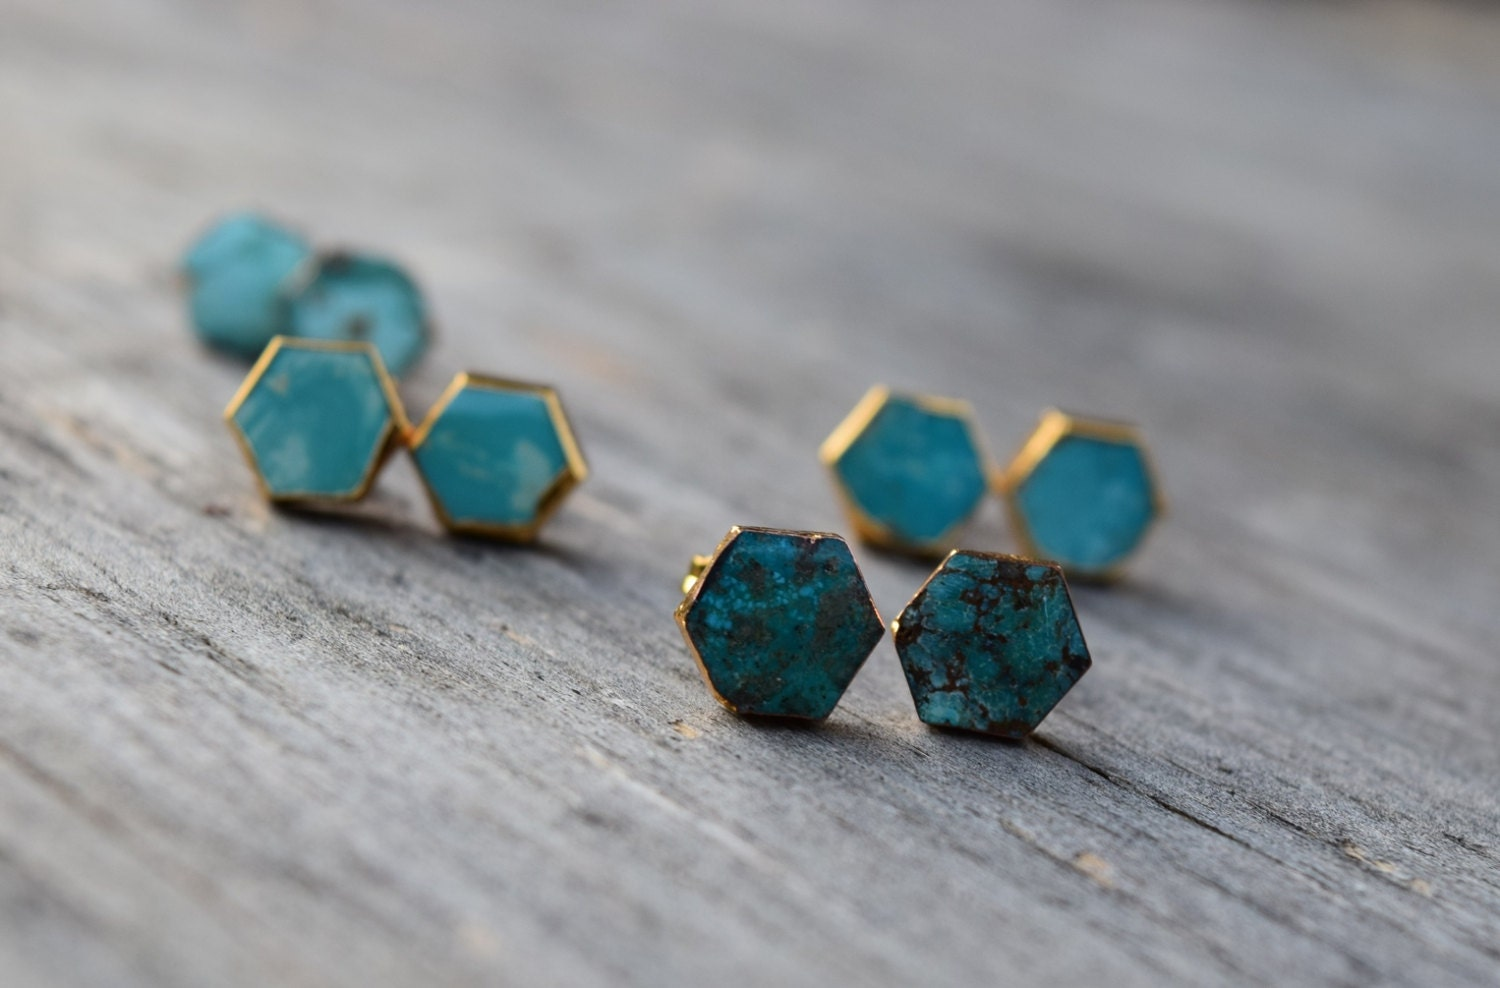 Natural Turquoise Stud Earrings Hexagon Raw Turquoise